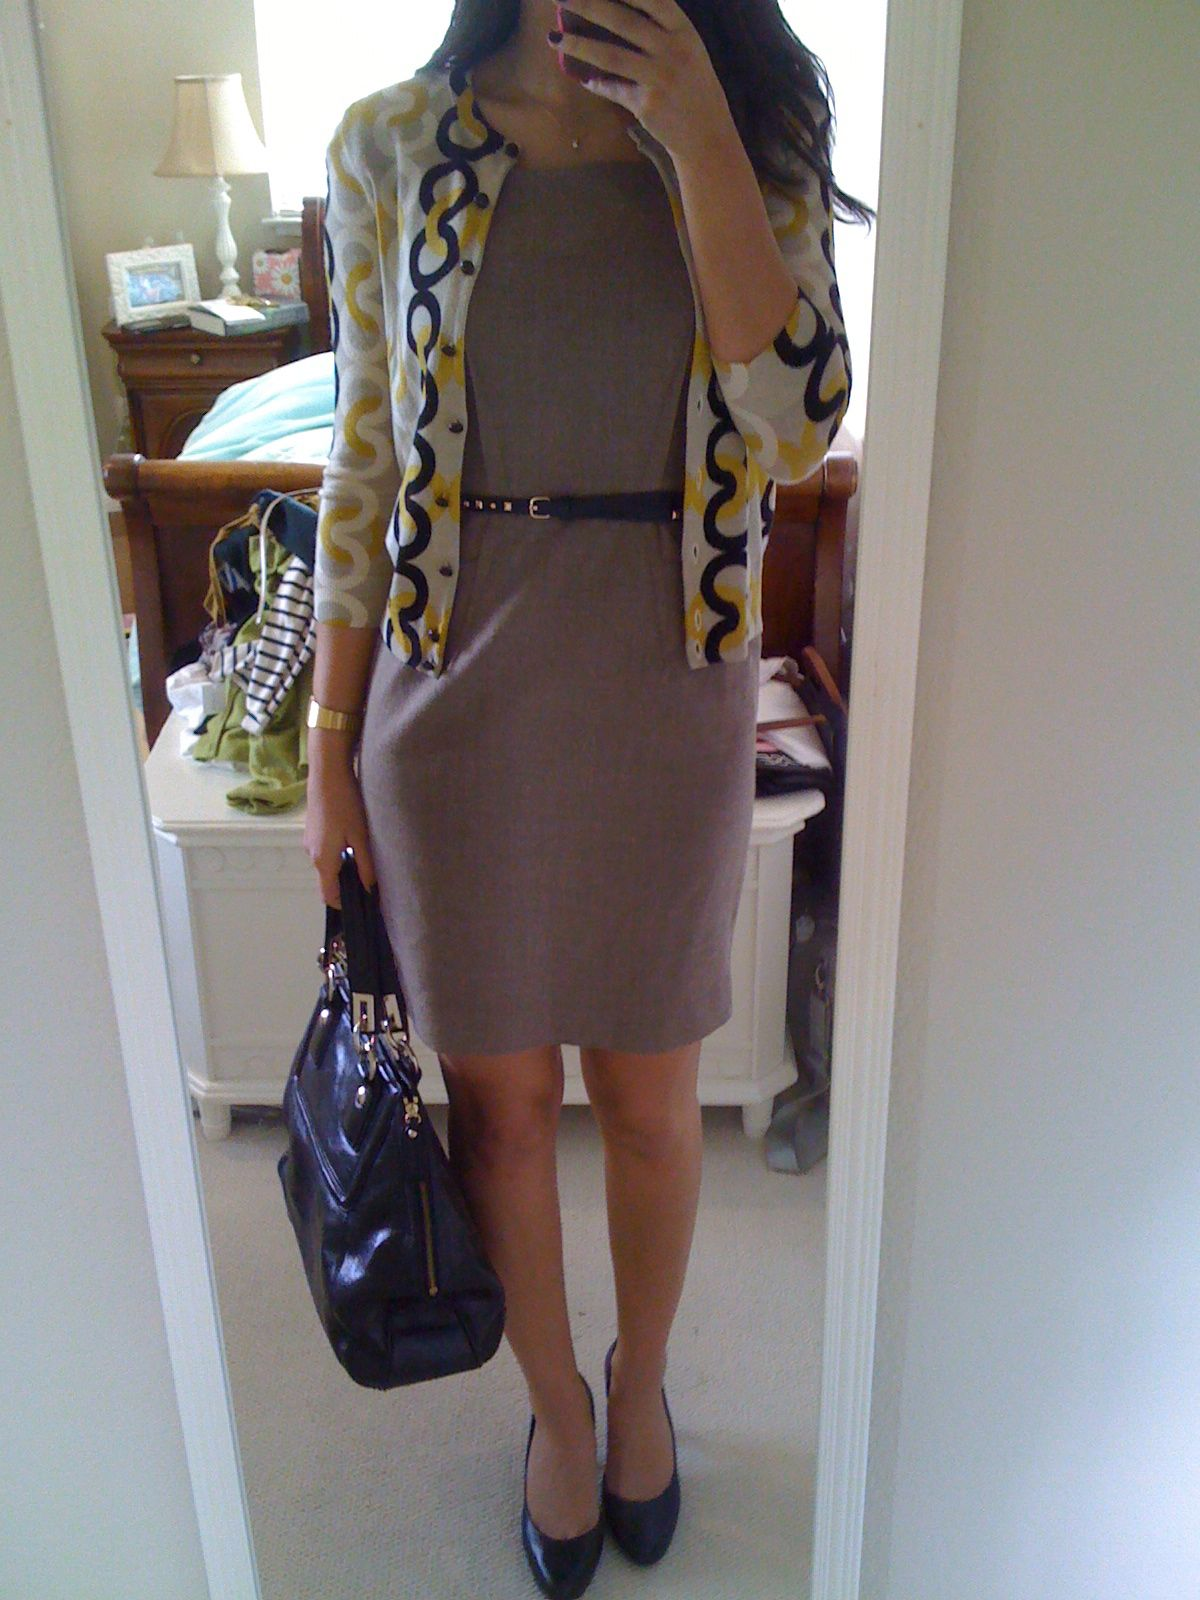 Interview clothing ideas - #interview #job #clothes